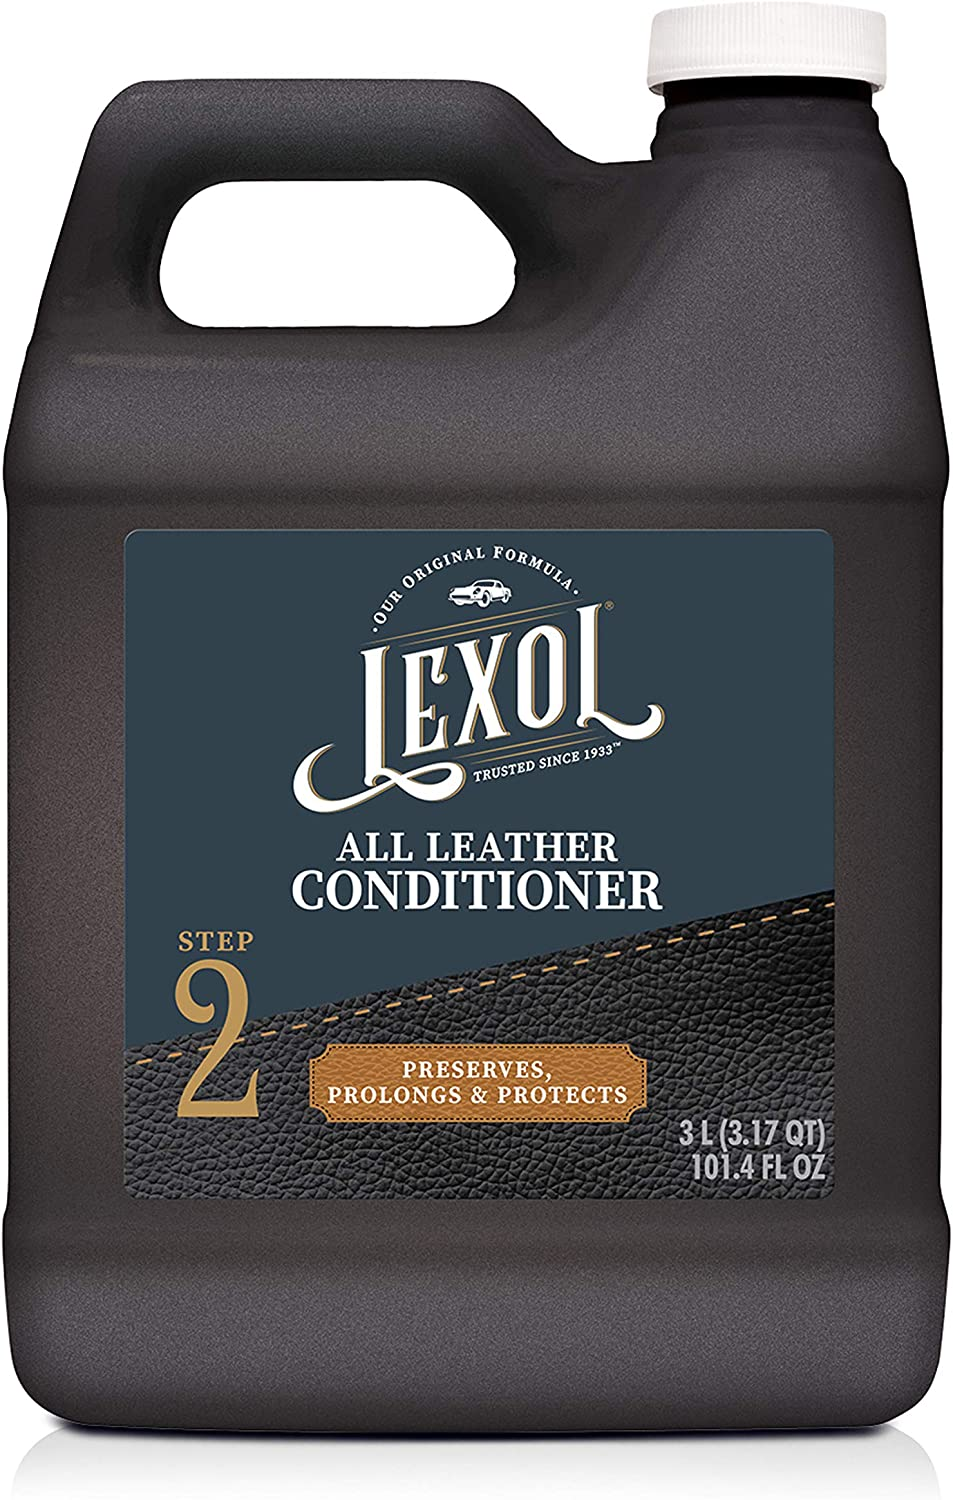 Lexol Leather Conditioner 3L Bottle, for Use on Leather Apparel, Furniture, Auto Interiors, Shoes, Handbags and Accessories